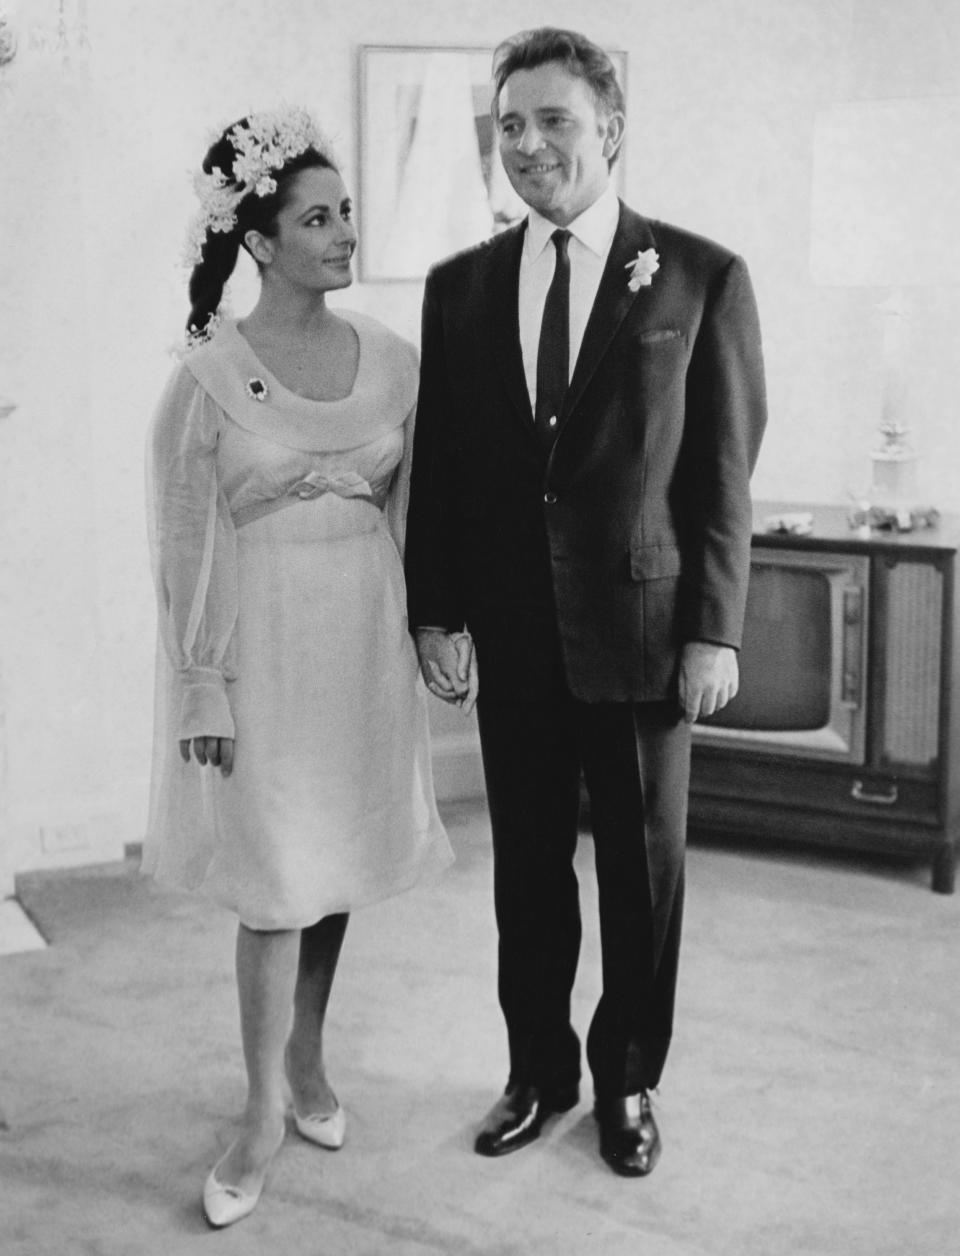 """<p>Taylor and Burton's fiery romance dominated headlines after the pair met while filming """"Cleopatra"""" in 1962. They married in 1964 and divorced a decade later. Despite their notoriously tumultuous relationship, the two remarried in 1975 - but their reconciliation would last less than a year. <em>(Image via Getty Images)</em></p>"""